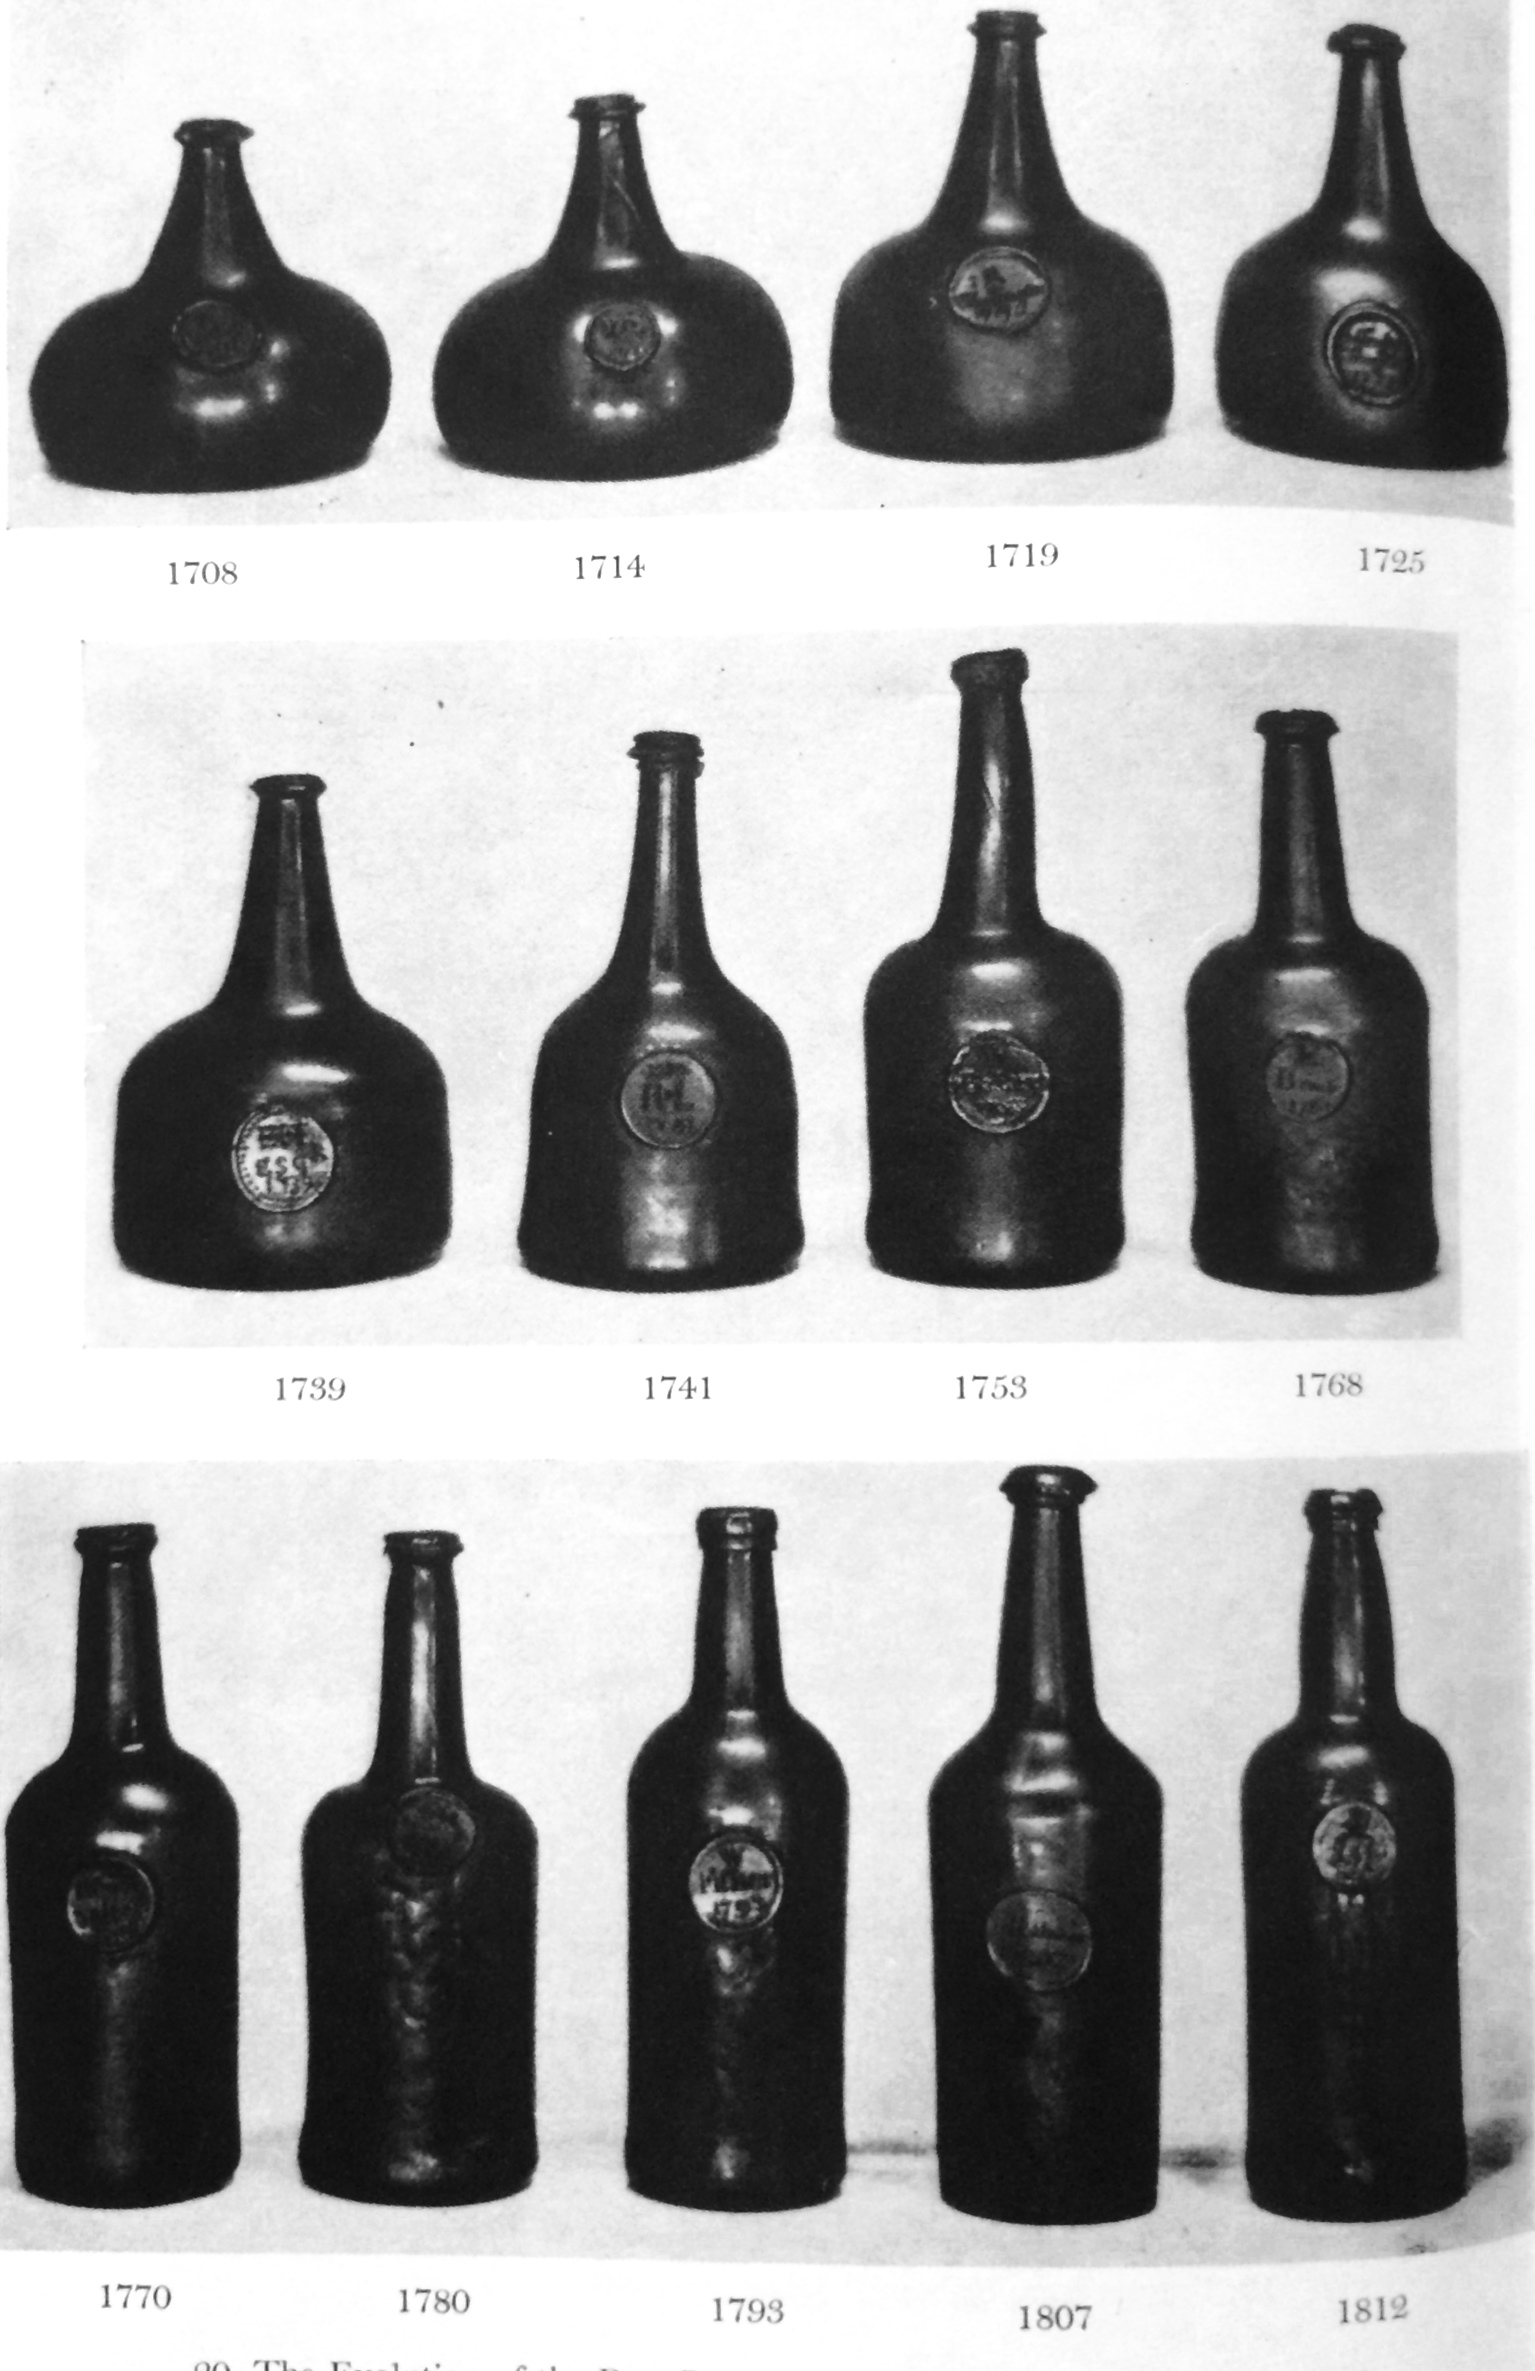 wine_bottle_evolution1.jpg